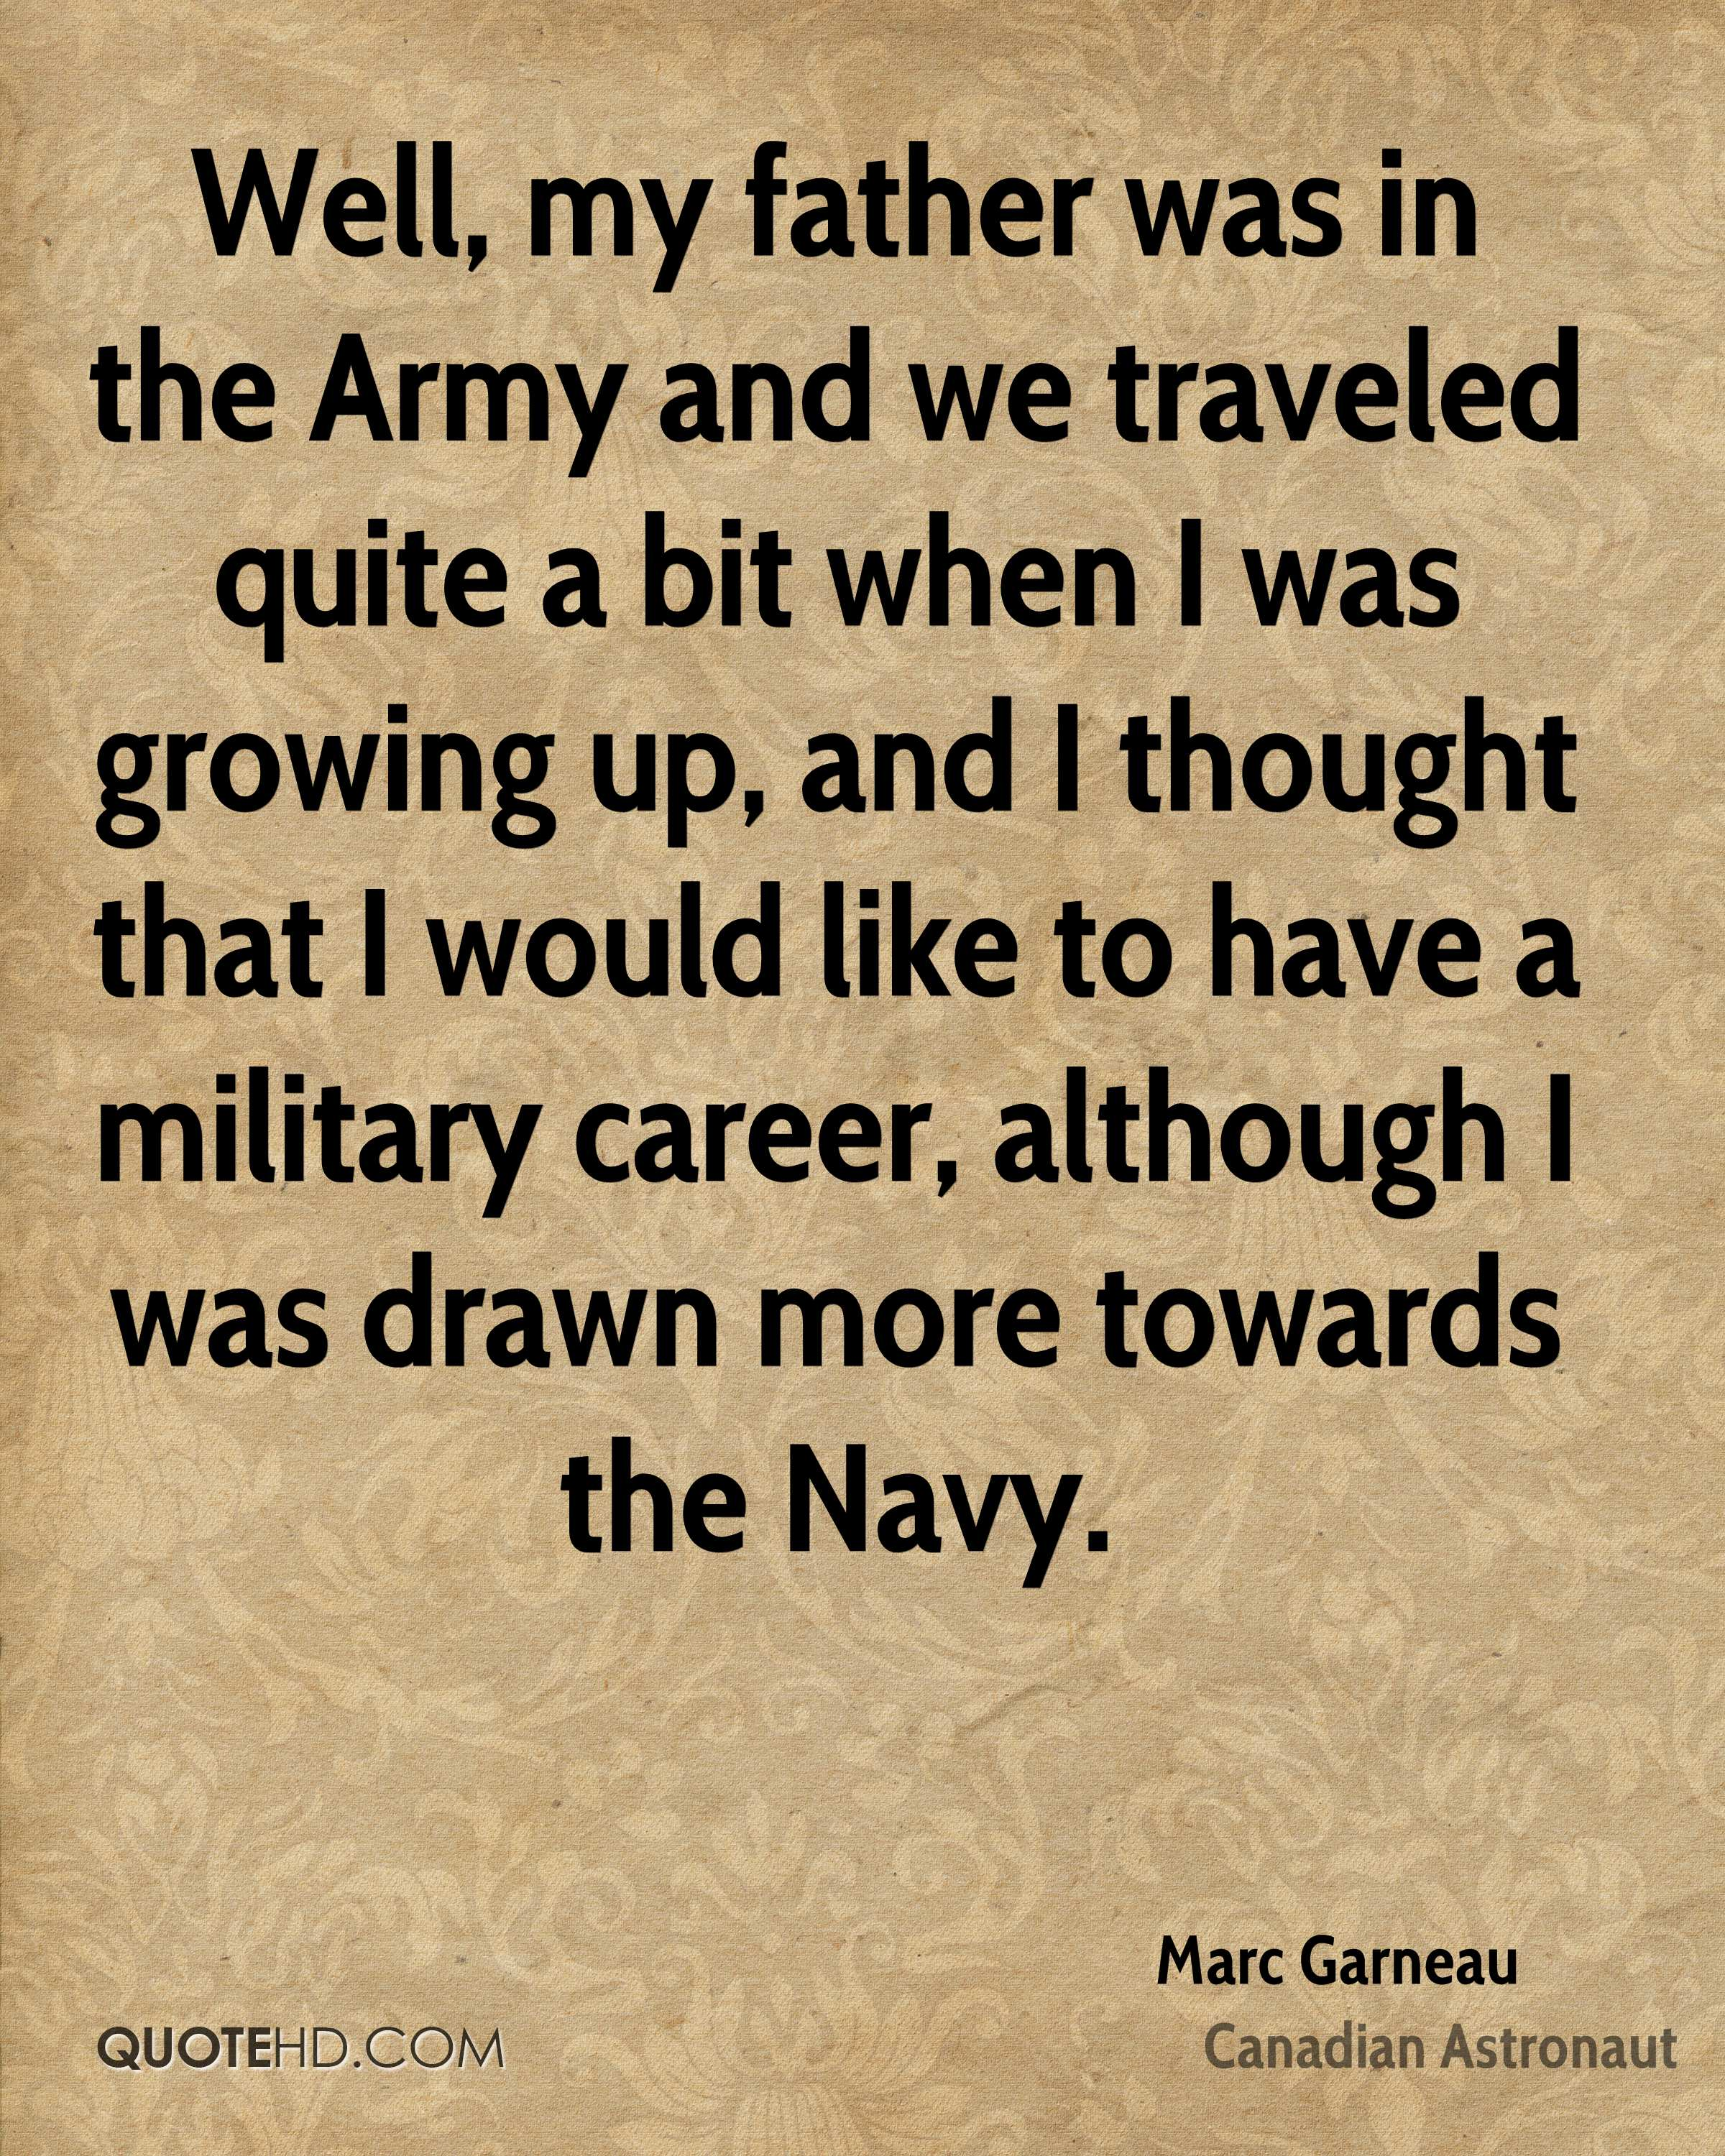 Military Father Daughter Quotes: Marc Garneau Quotes